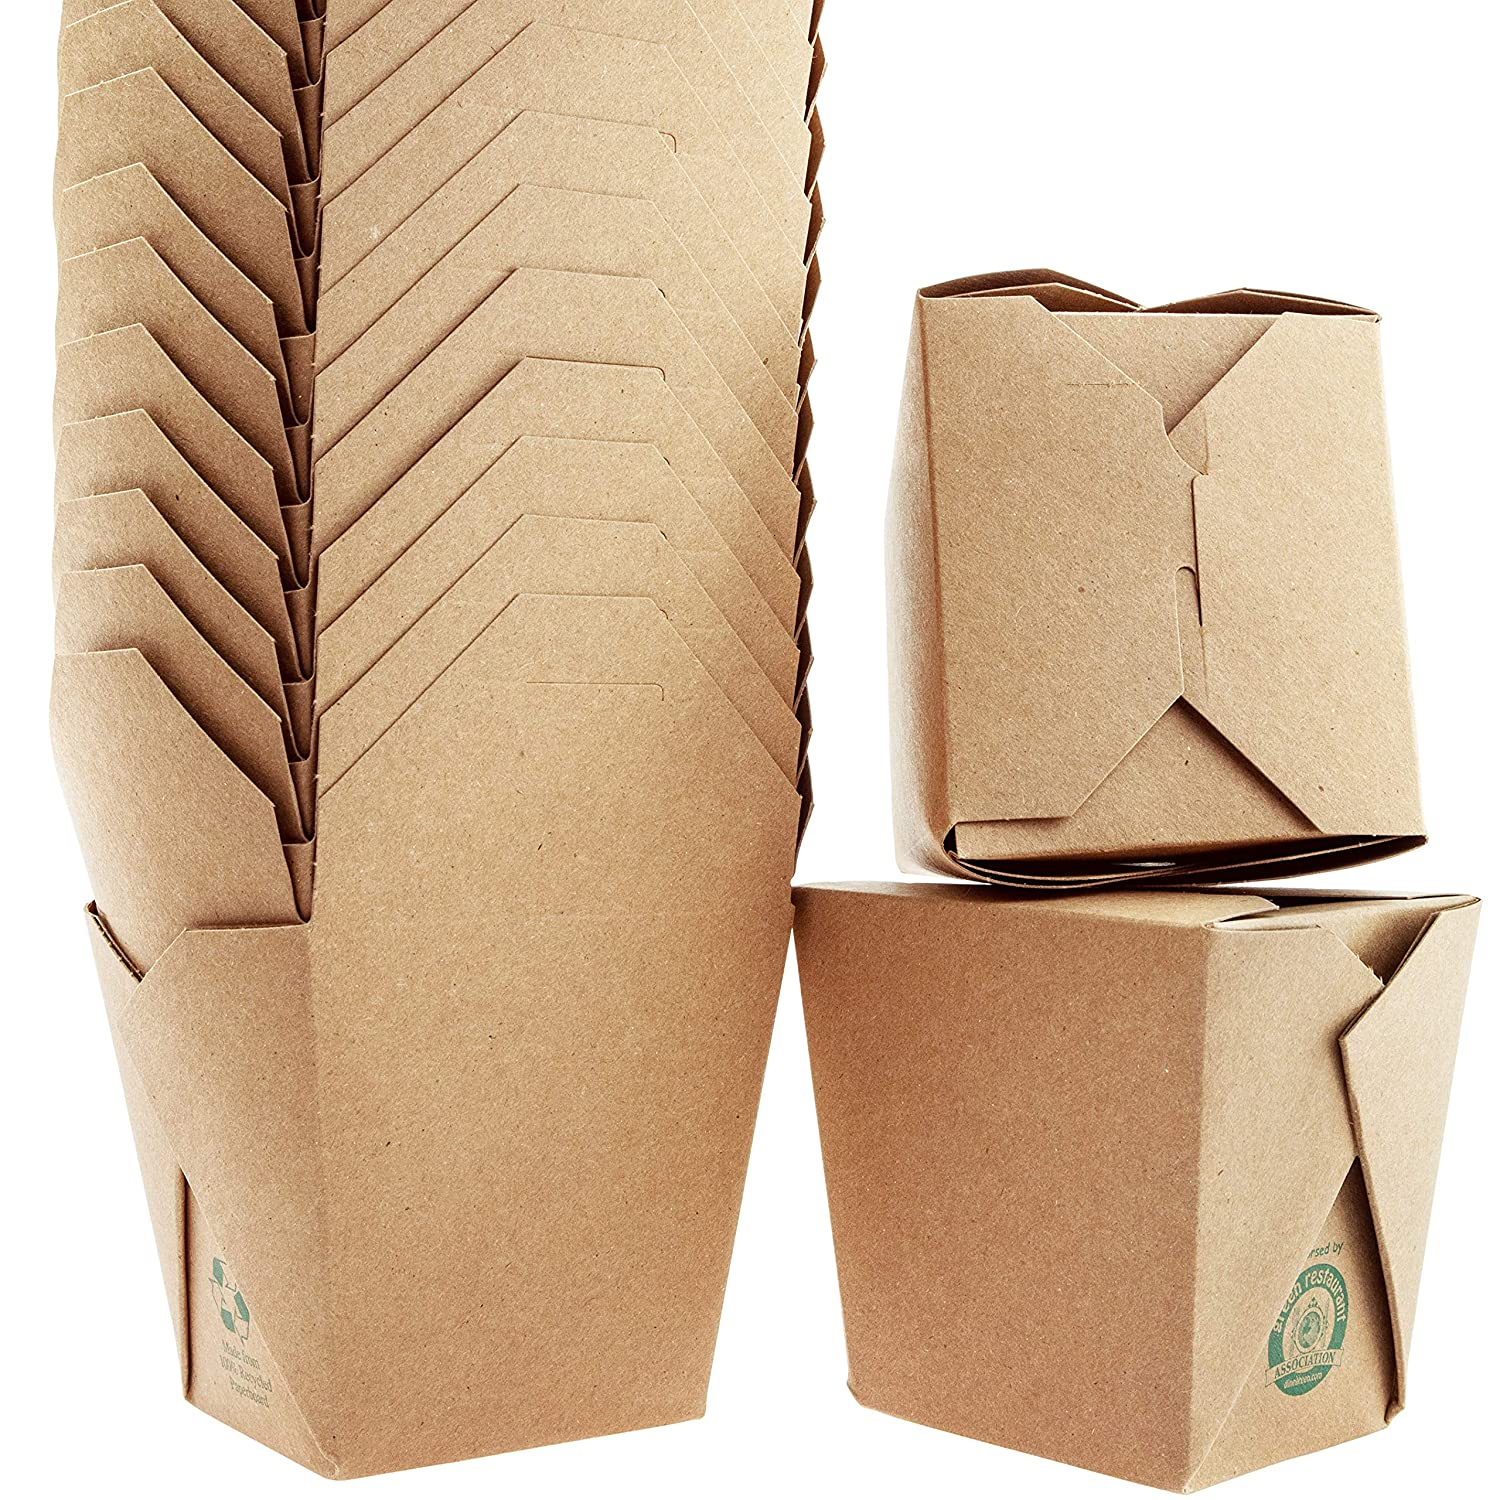 New products, world's highest quality popular! Microwaveable Leak Proof Many popular brands Chinese Take Out Brown Boxes 25 Pack of